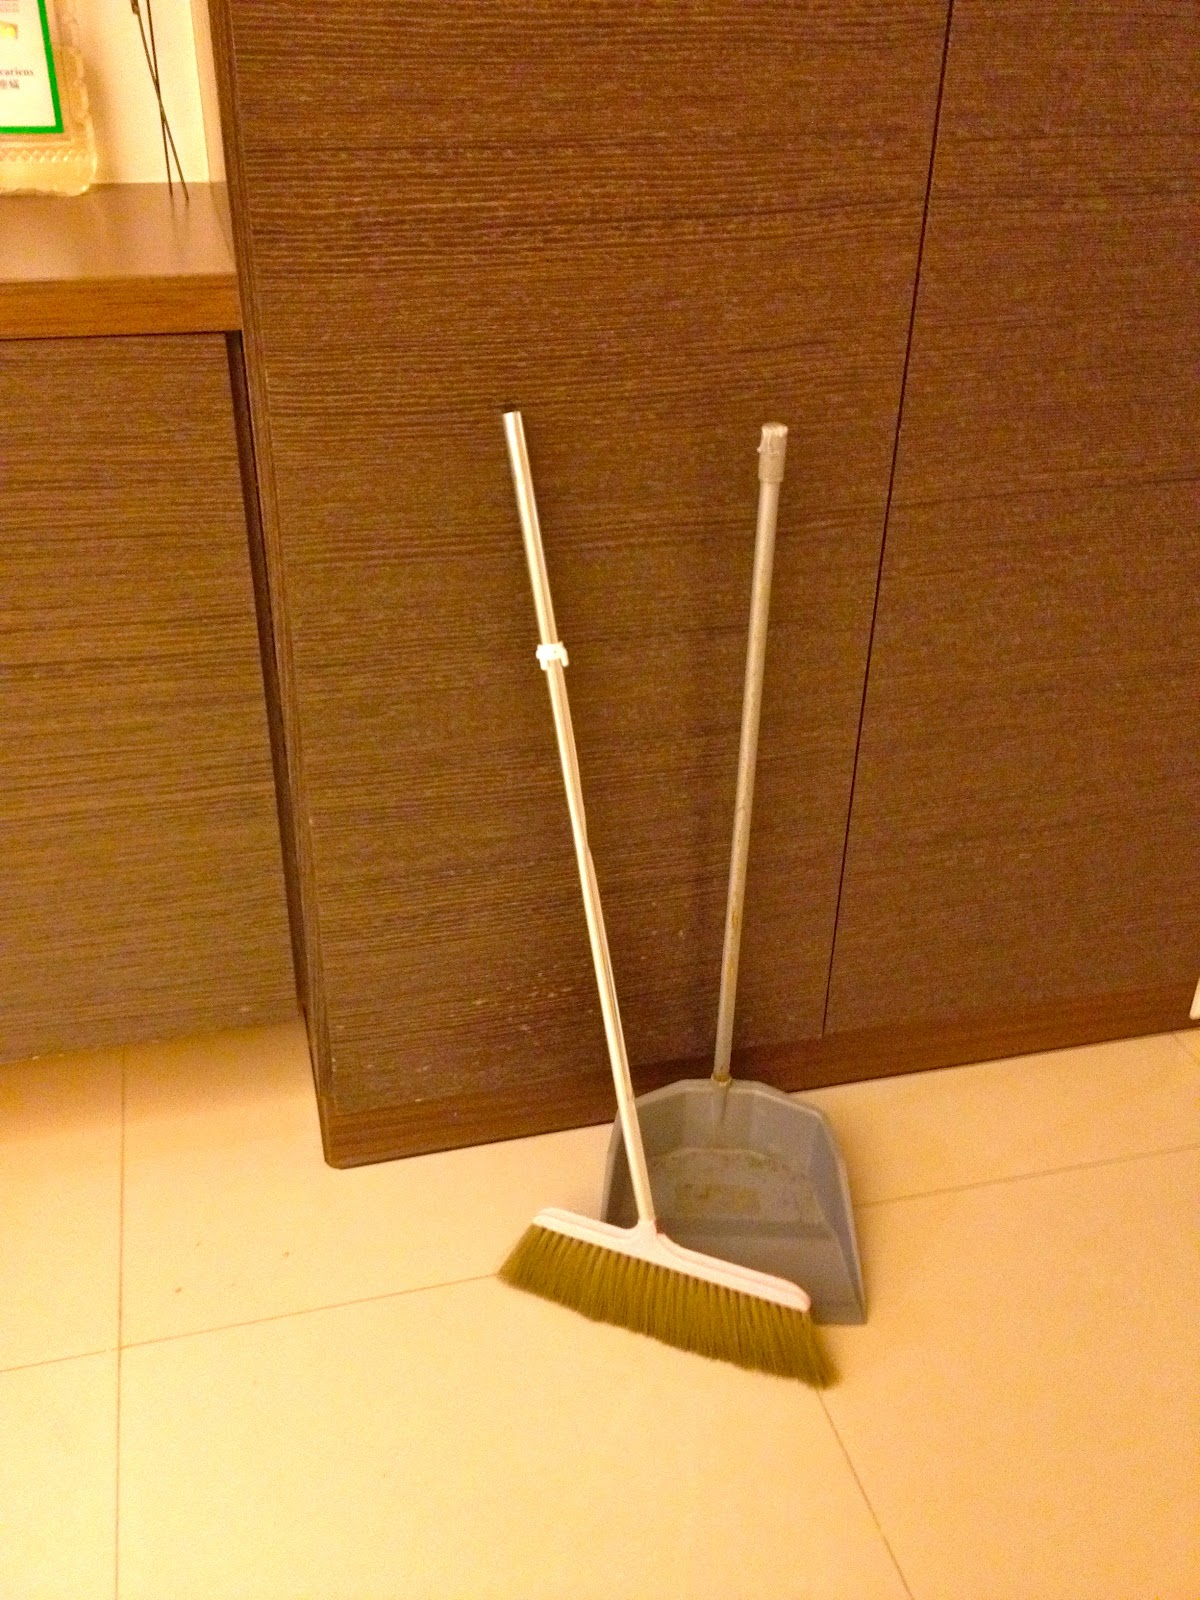 Our Taiwan Adventure: Random pictures of Household Items